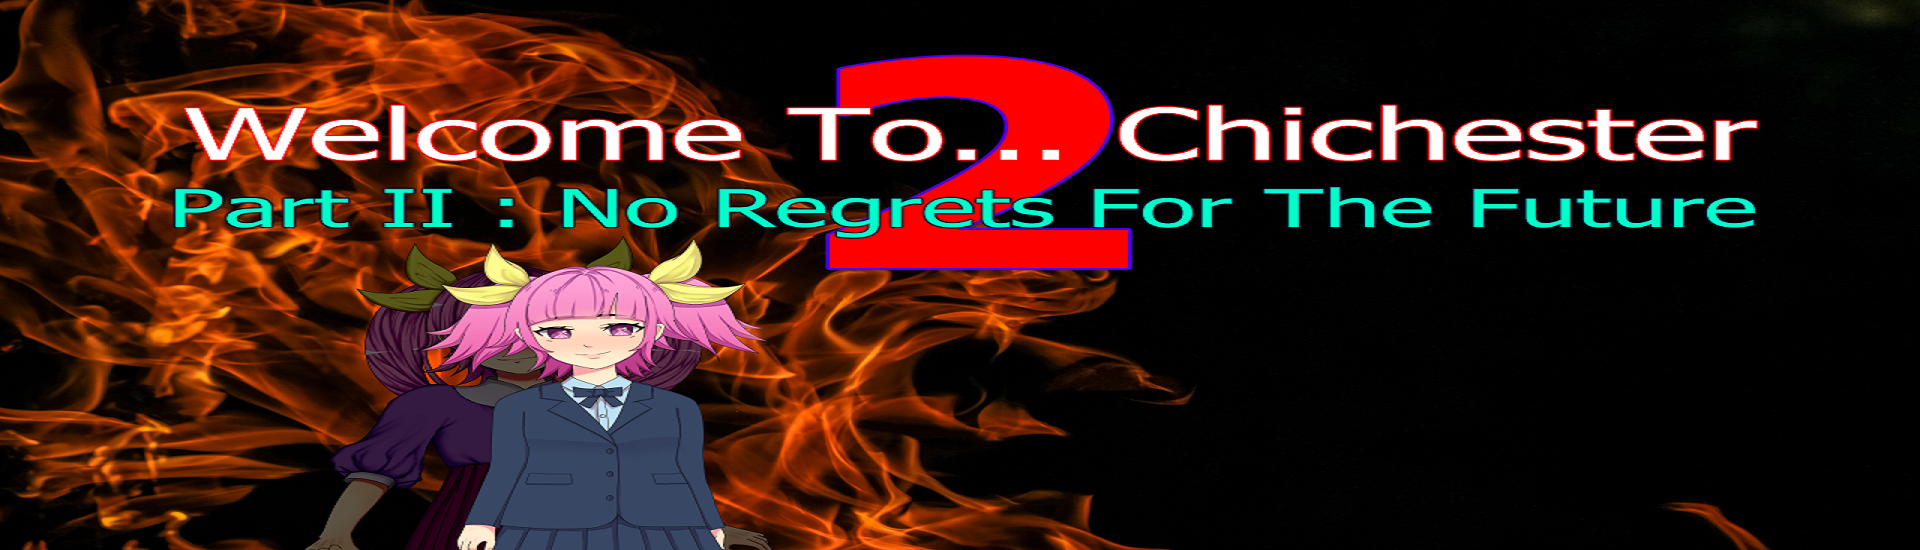 Welcome To... Chichester 2 - Part 2 : No Regrets For The Future cover